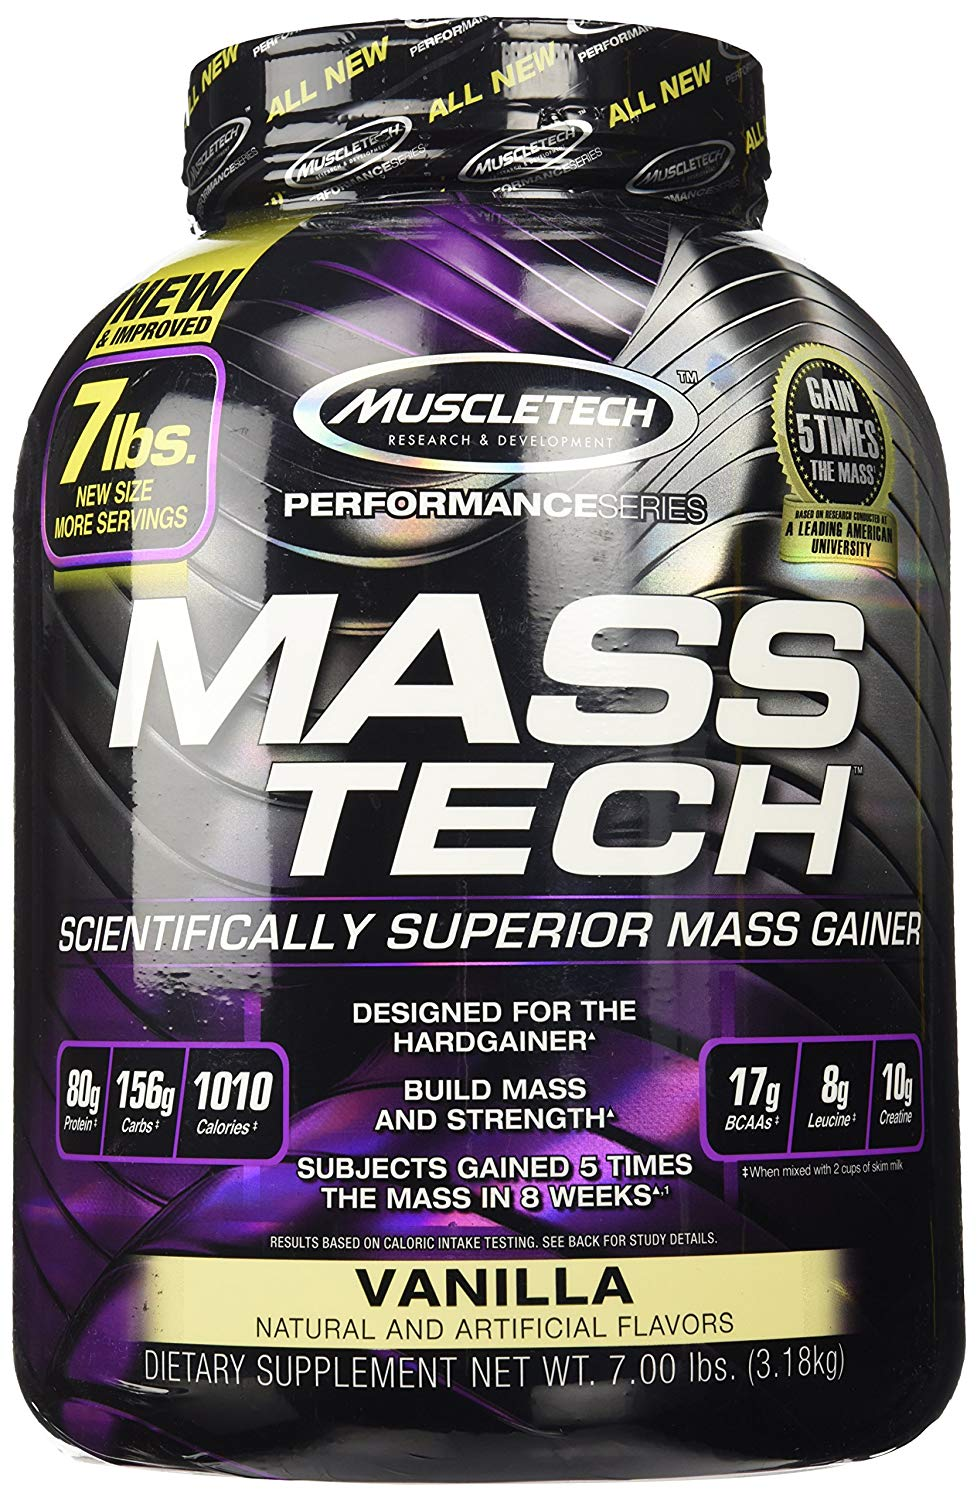 Susu-Muscletech-Mass-Tech